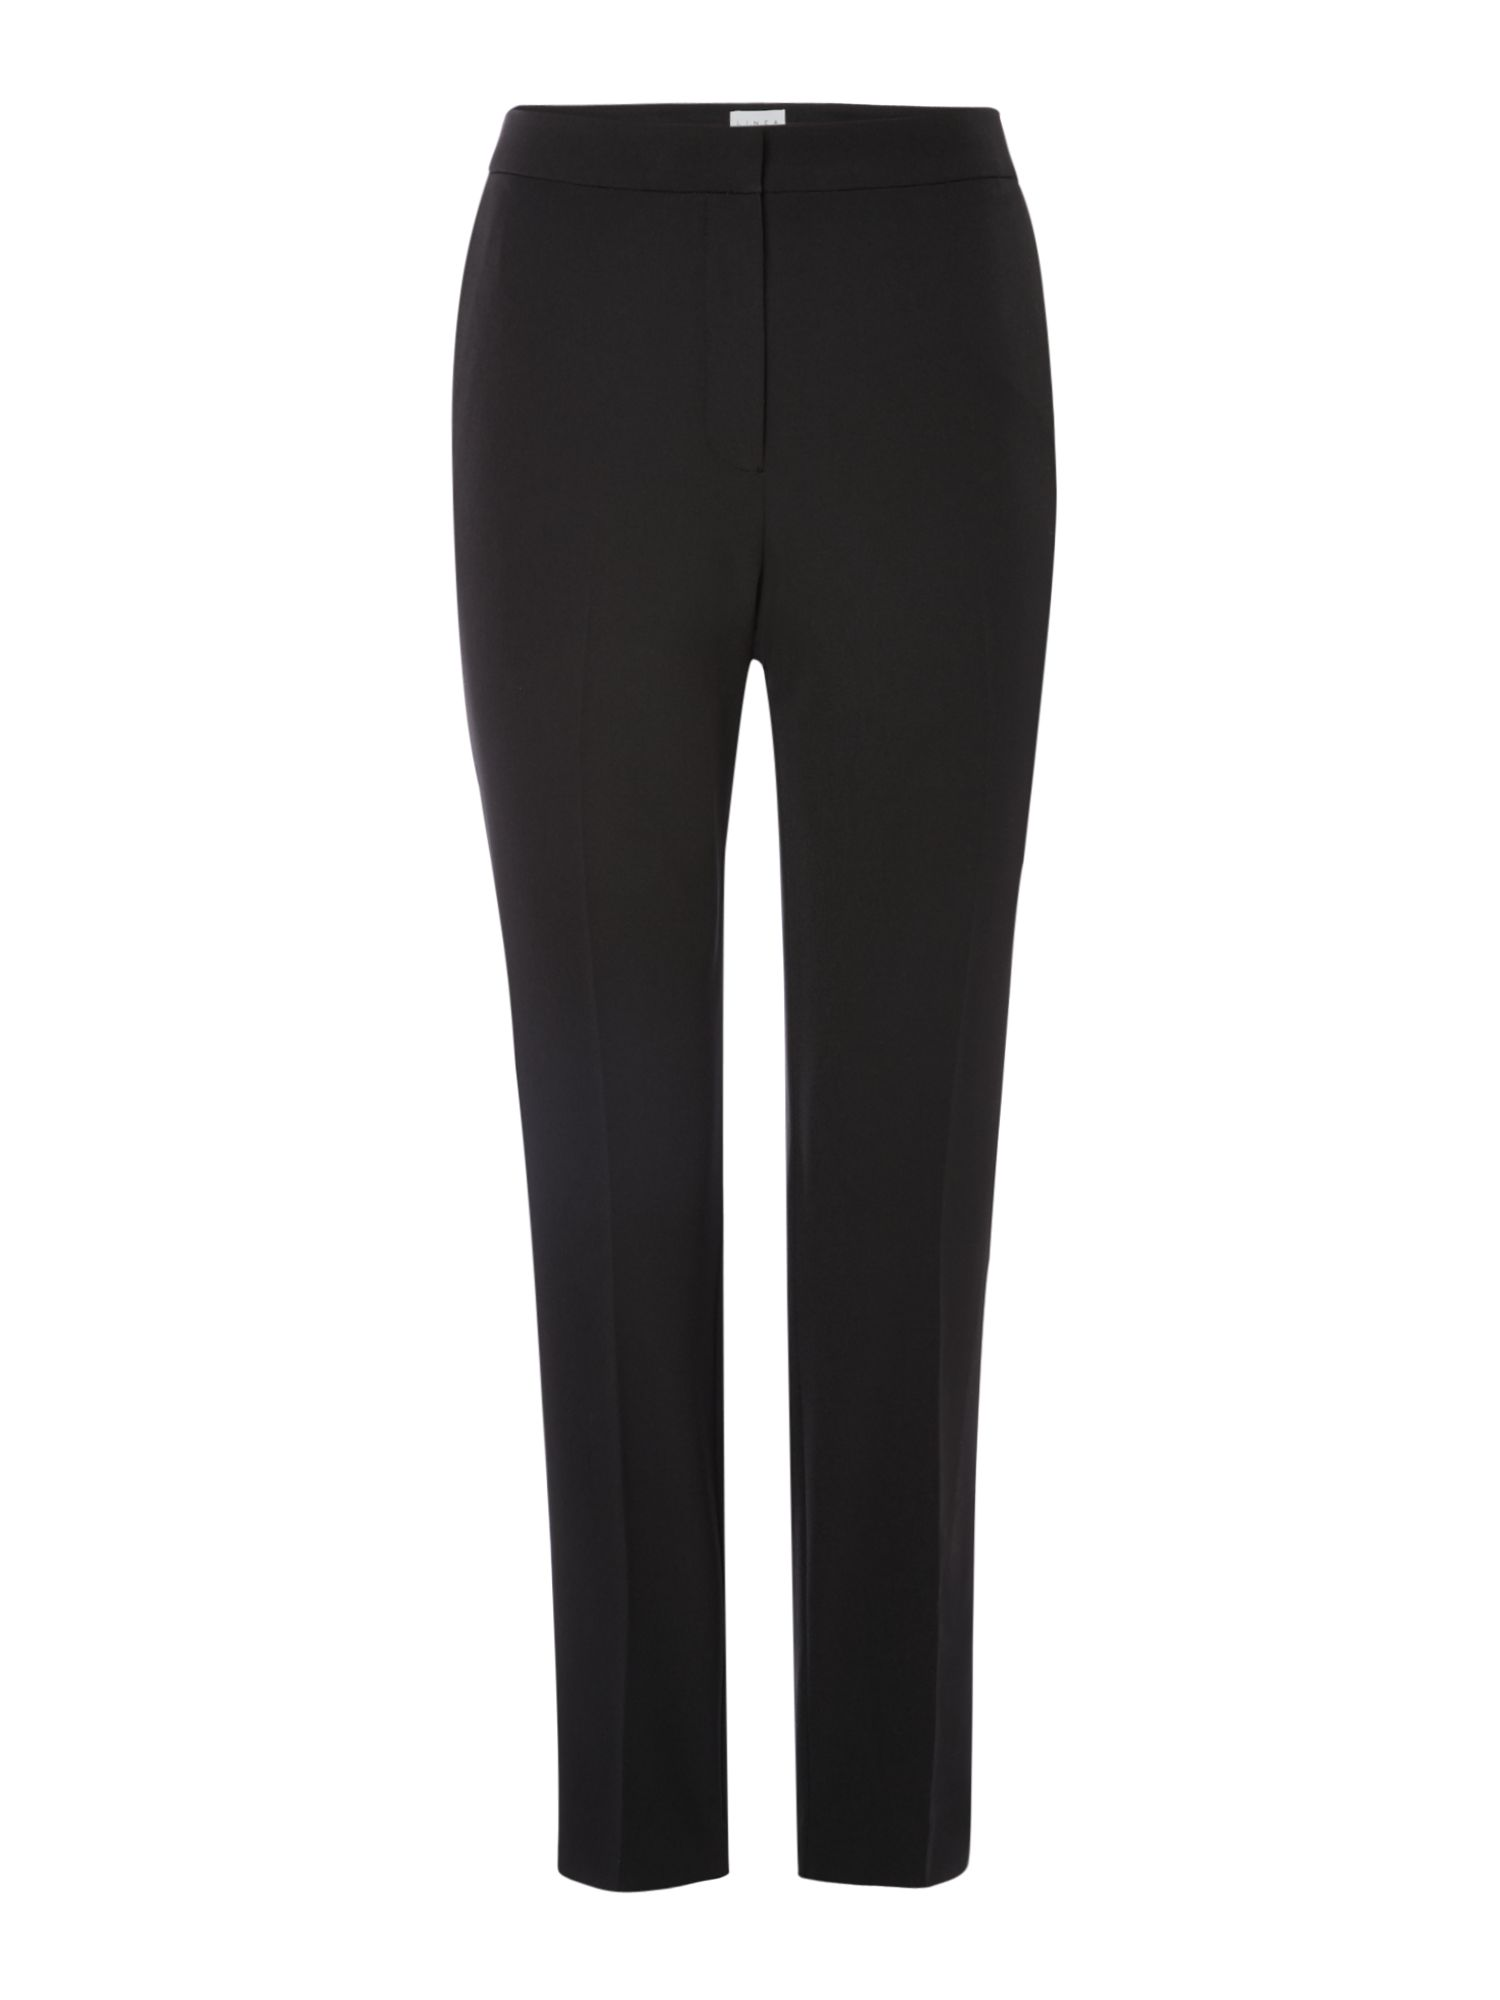 Linea Black pipa trousers, Black